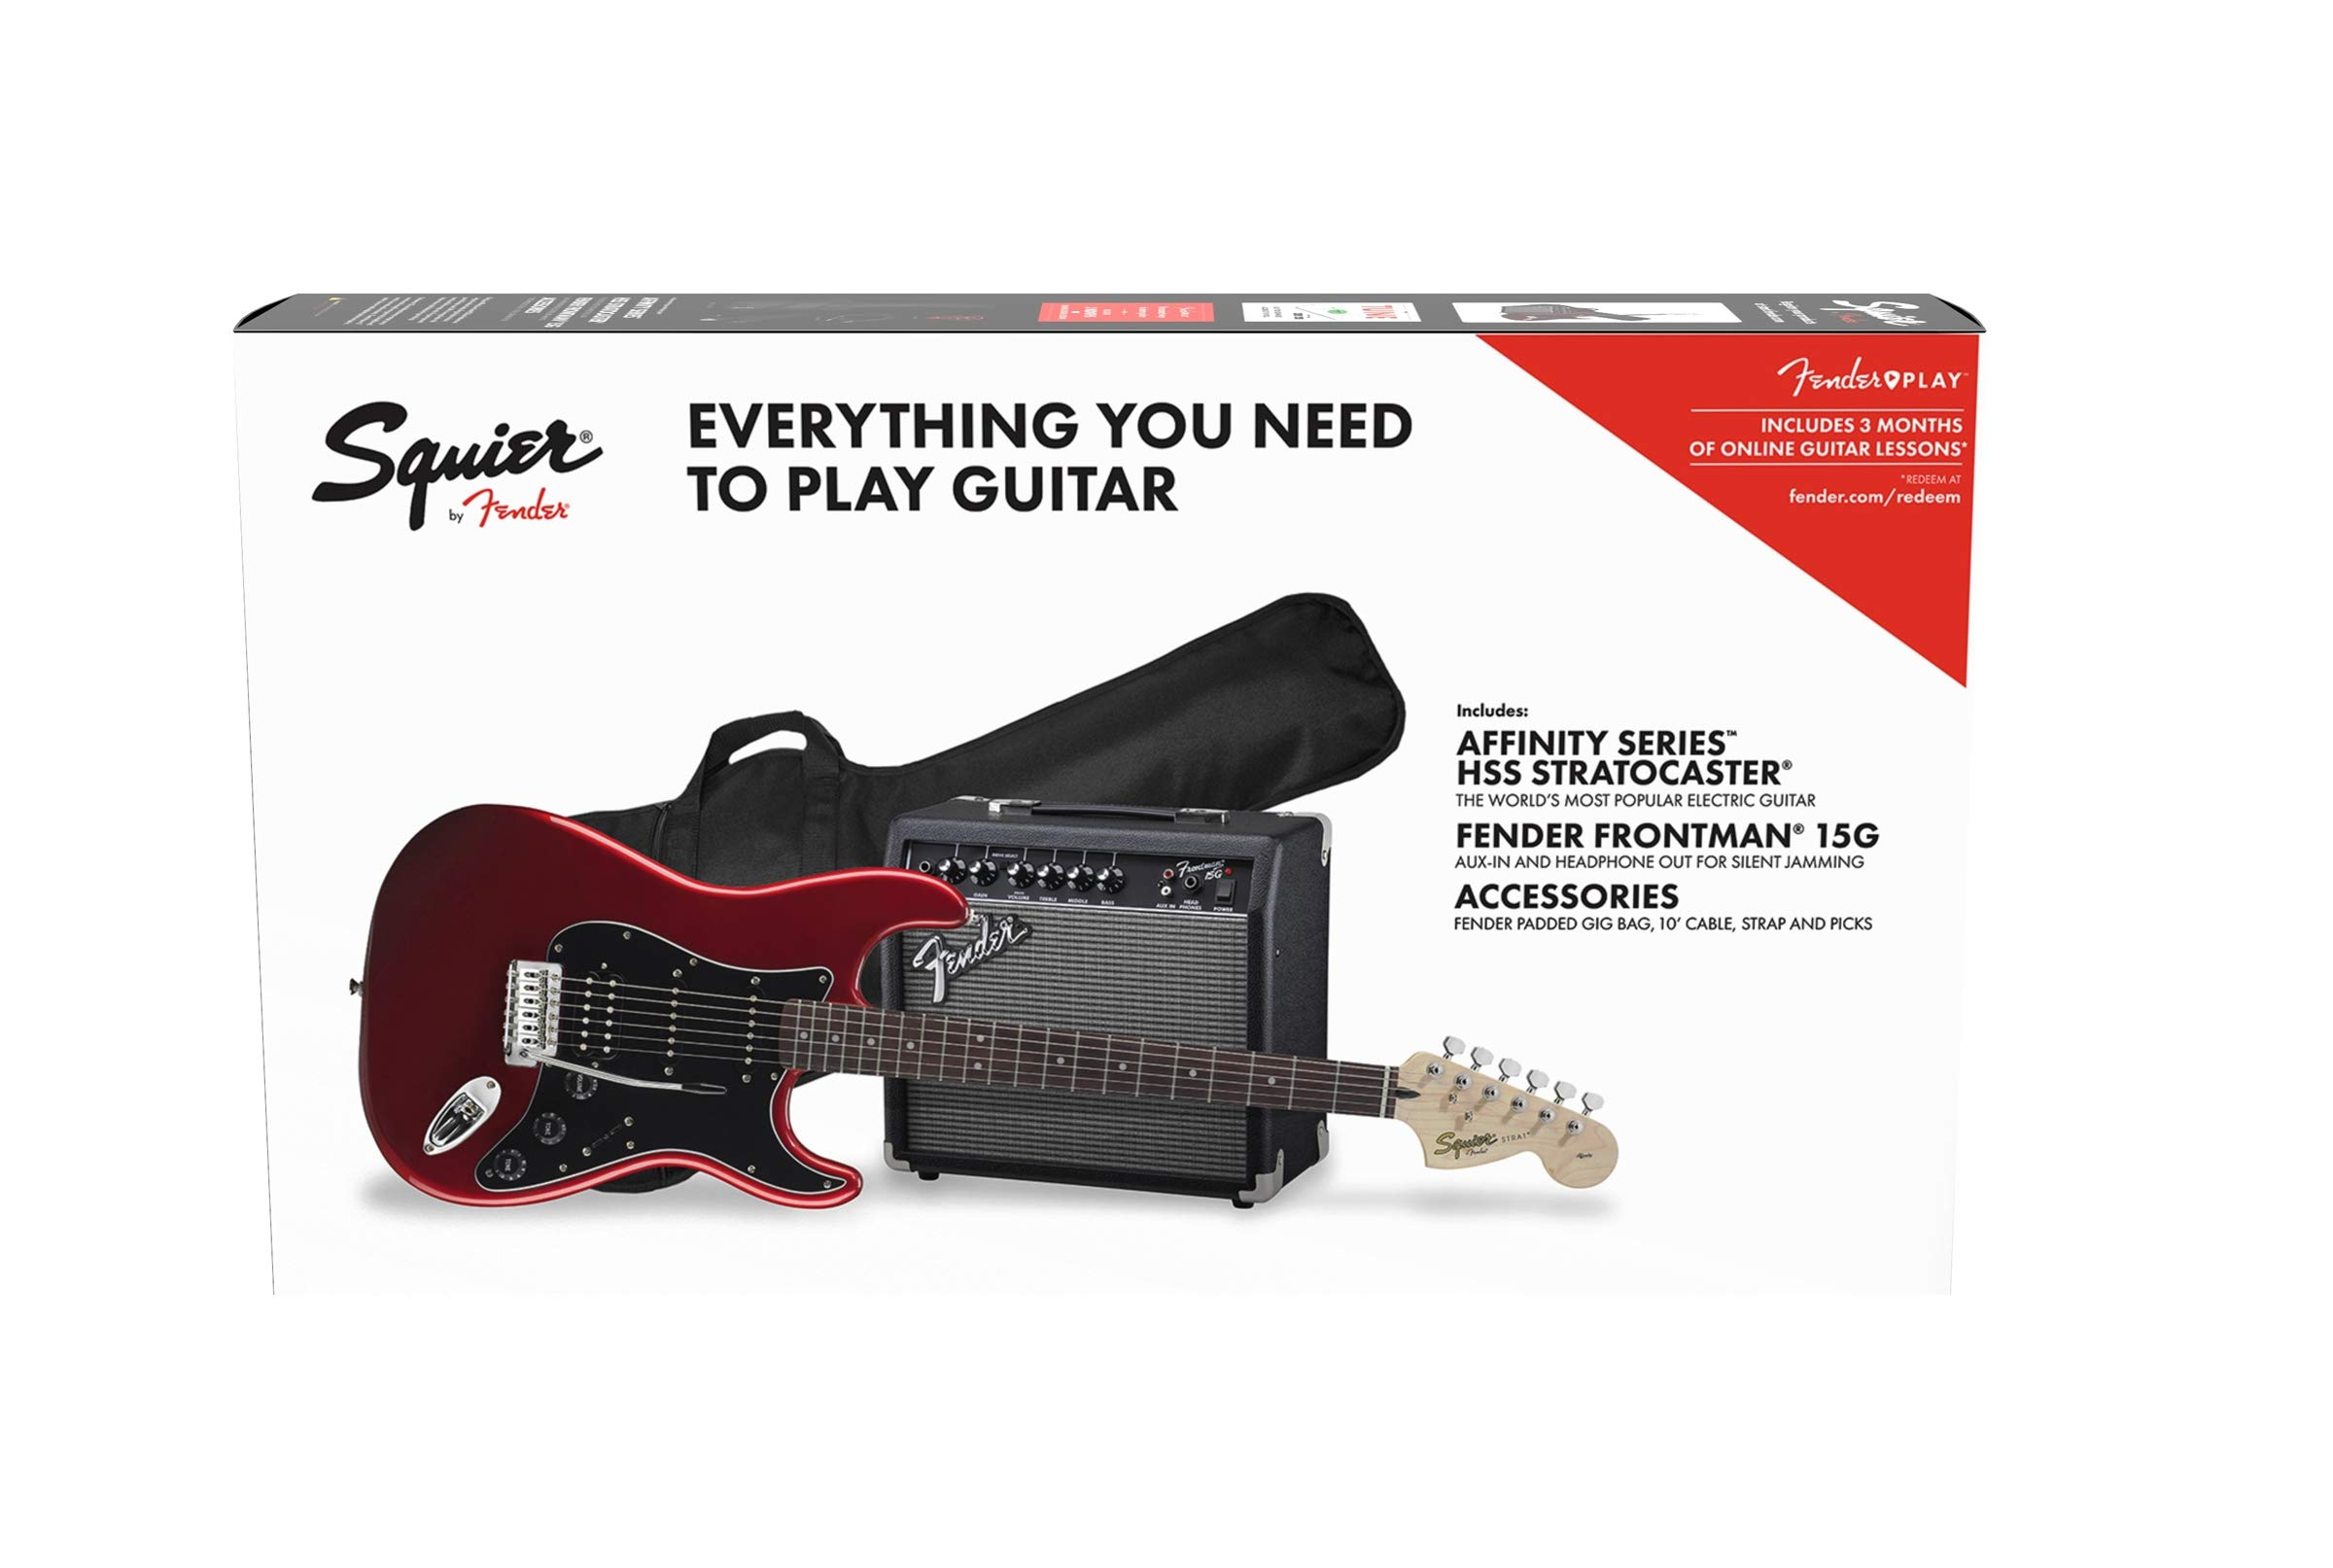 Squier by Fender Affinity Stratocaster Beginner Pack, Laurel Fingerboard, Candy Apple Red, with Gig Bag, Amp, Strap, Cable, Picks, and Fender Play by Fender